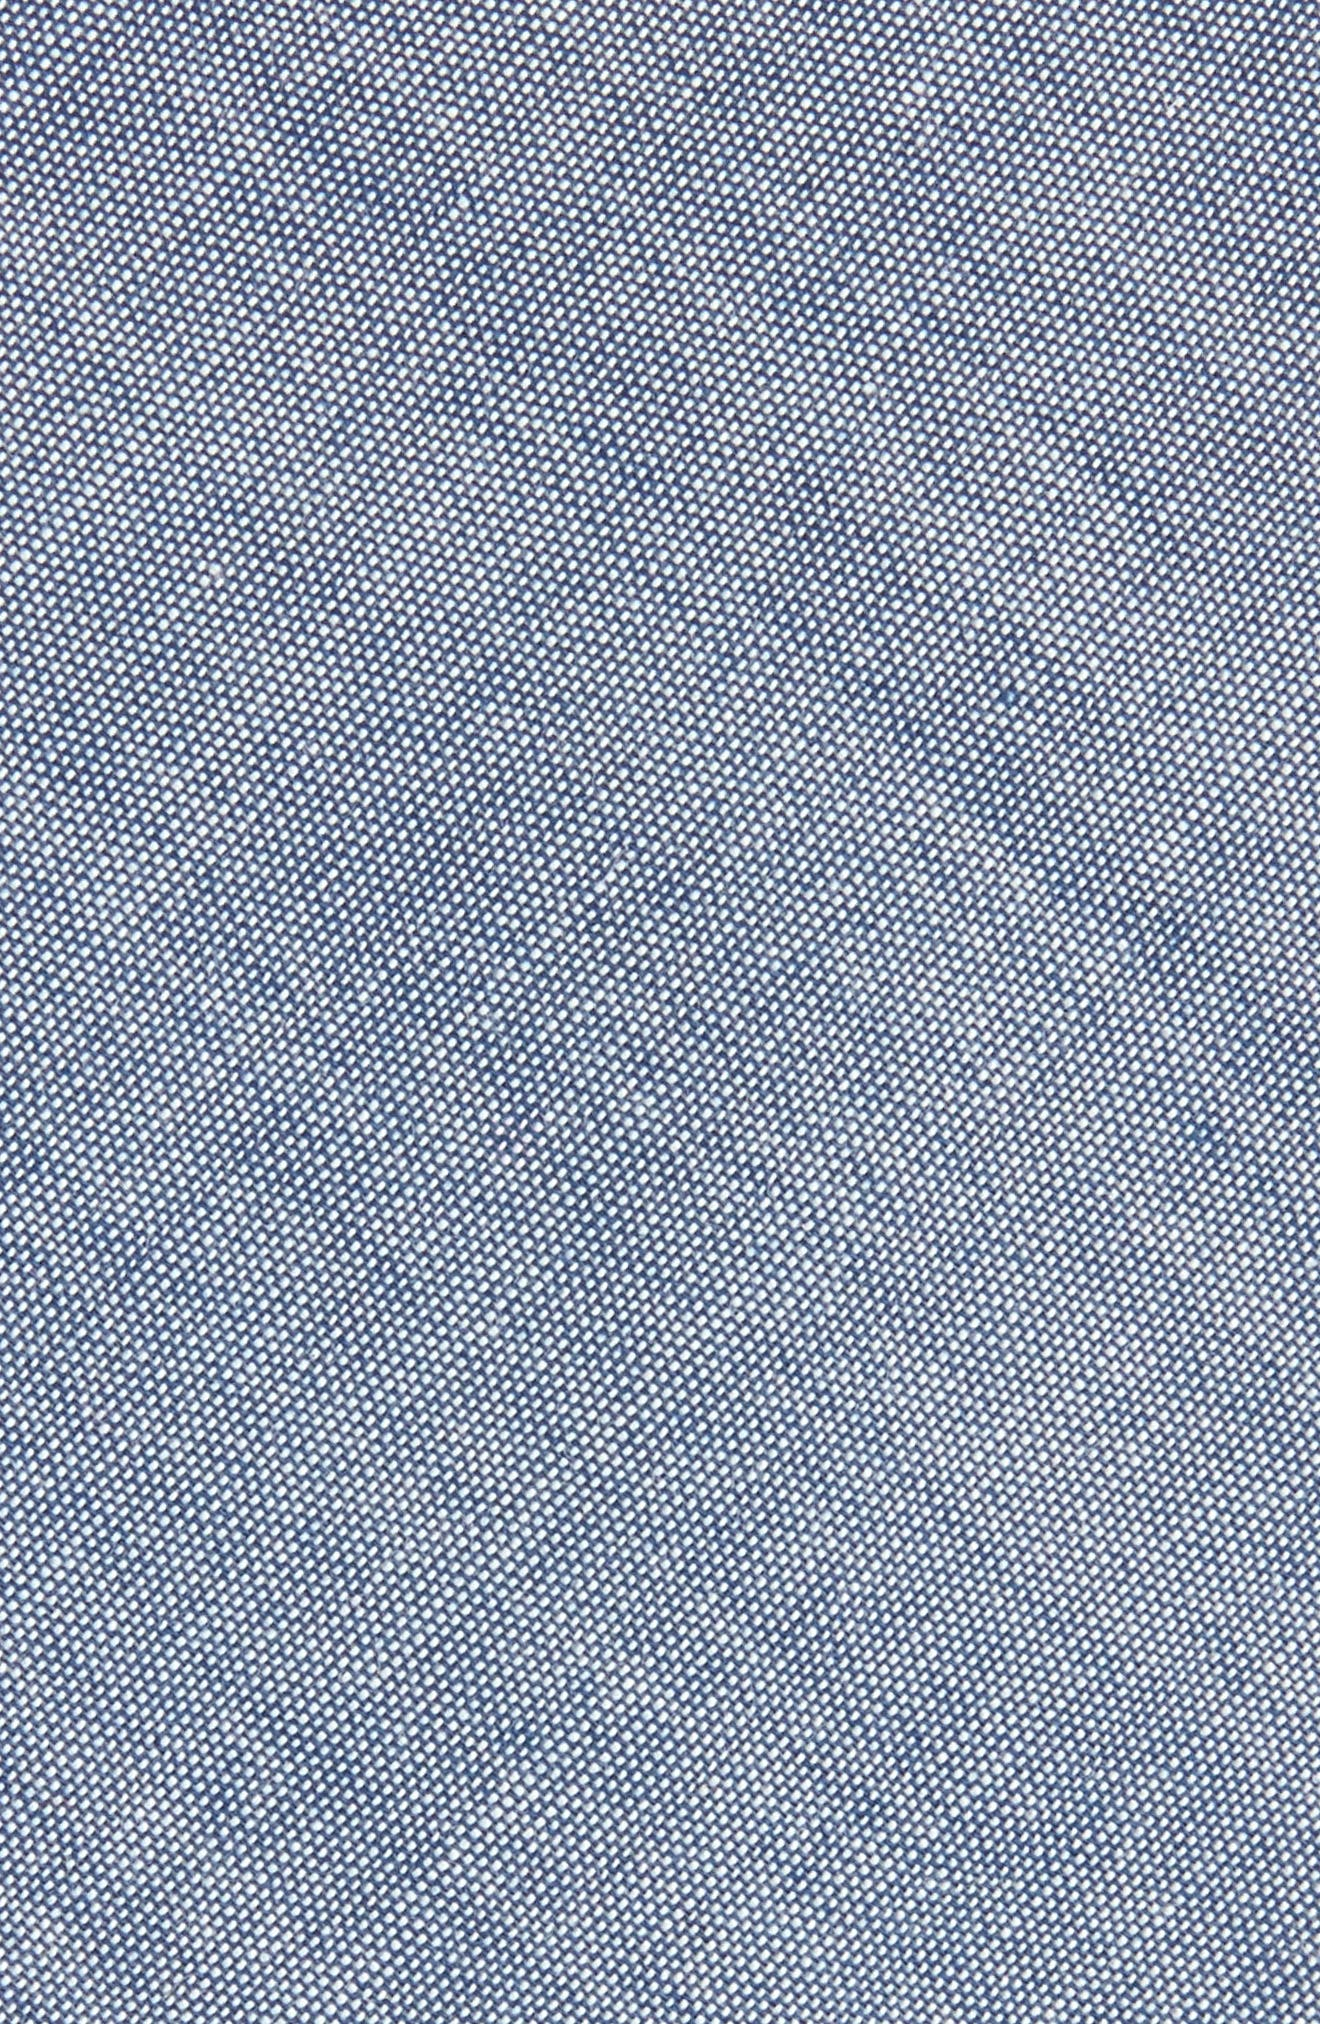 Classic Chambray Cotton Tie,                             Alternate thumbnail 2, color,                             Warm Blue